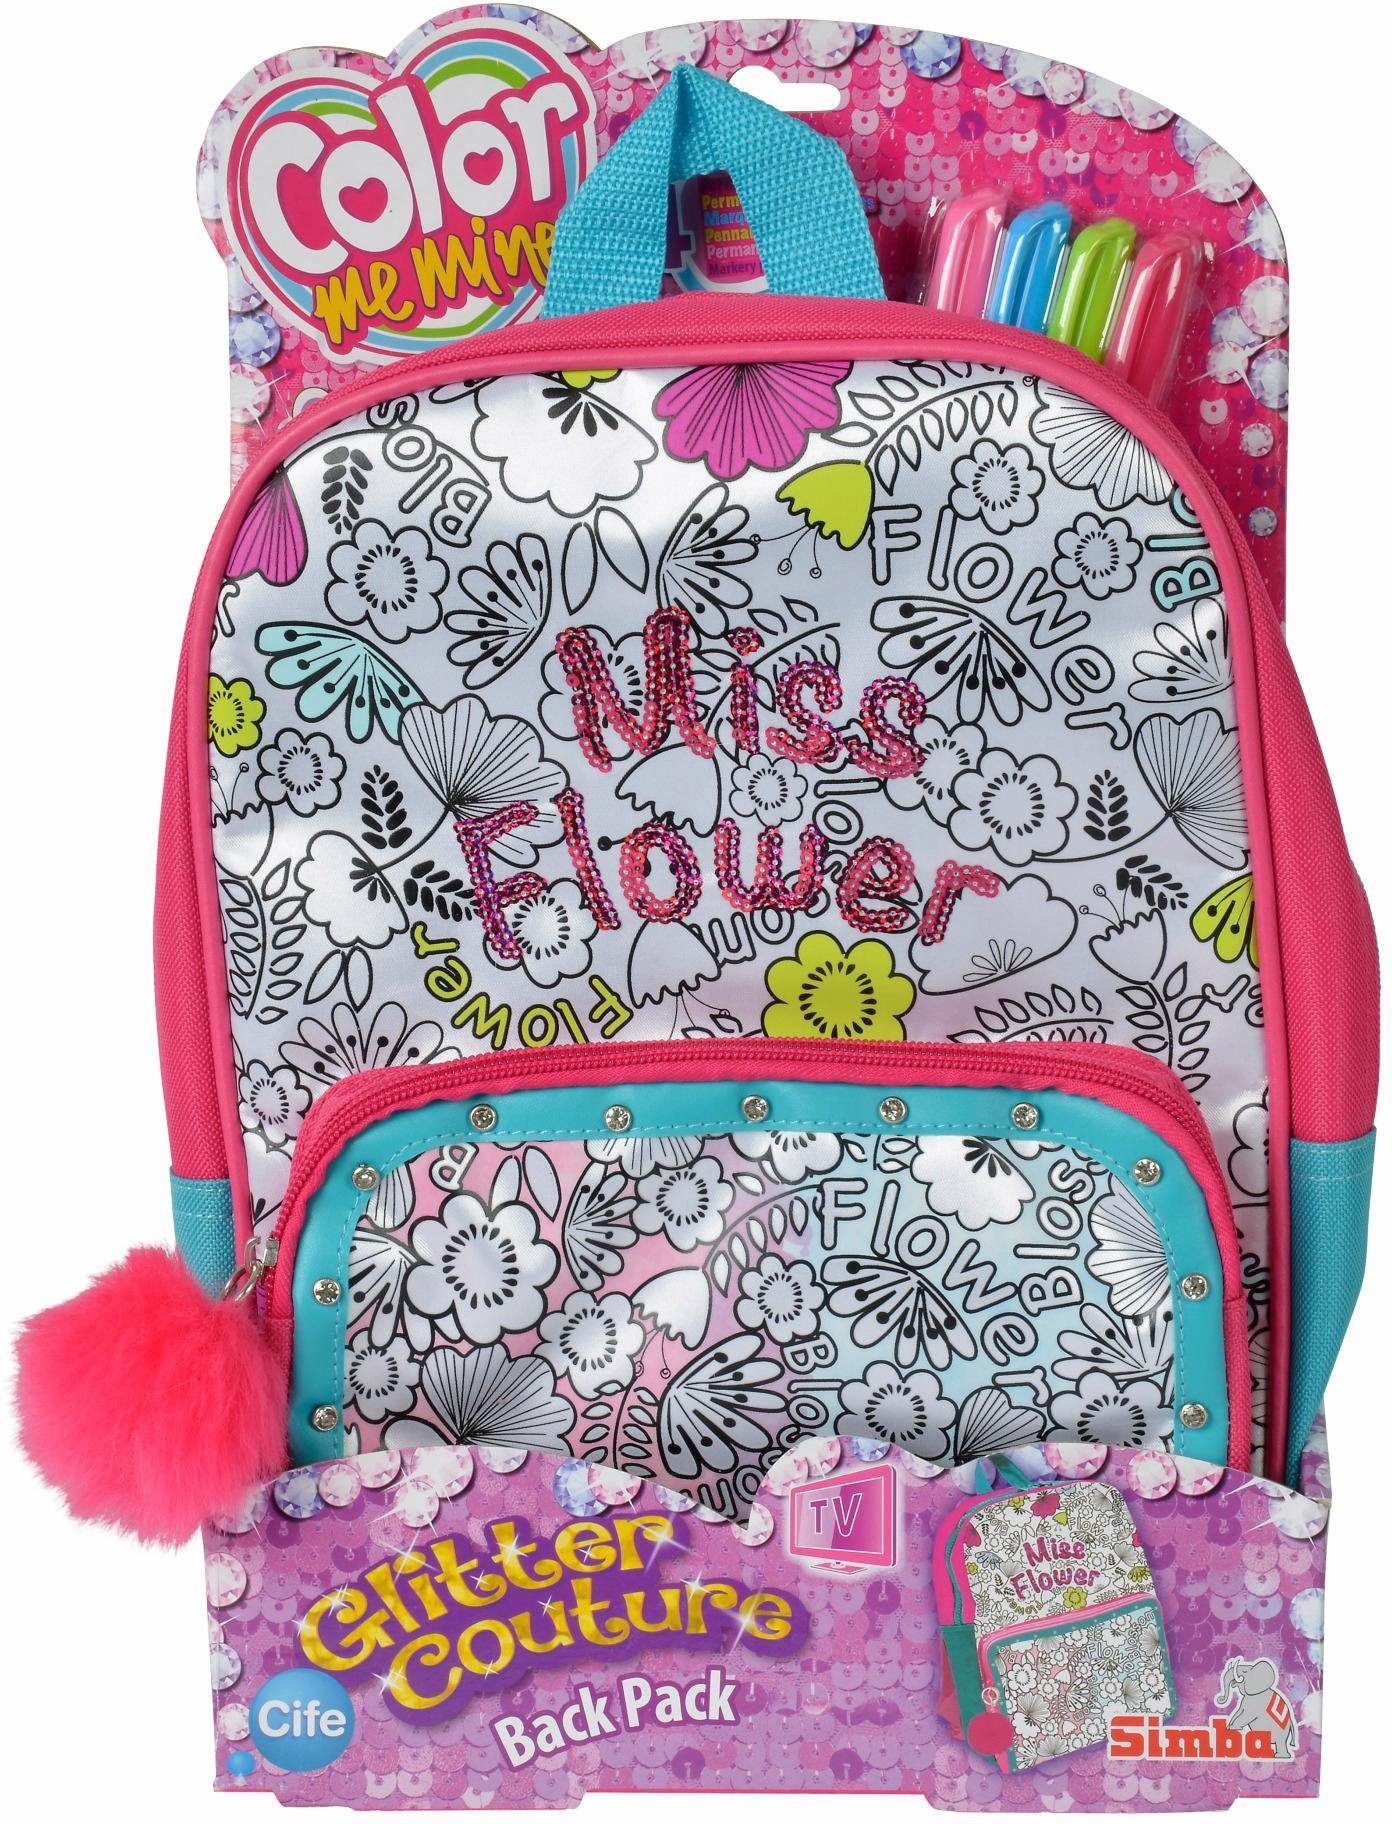 Simba Tasche zum Bemalen, »Color Me Mine, Glitter Couture Back Pack«